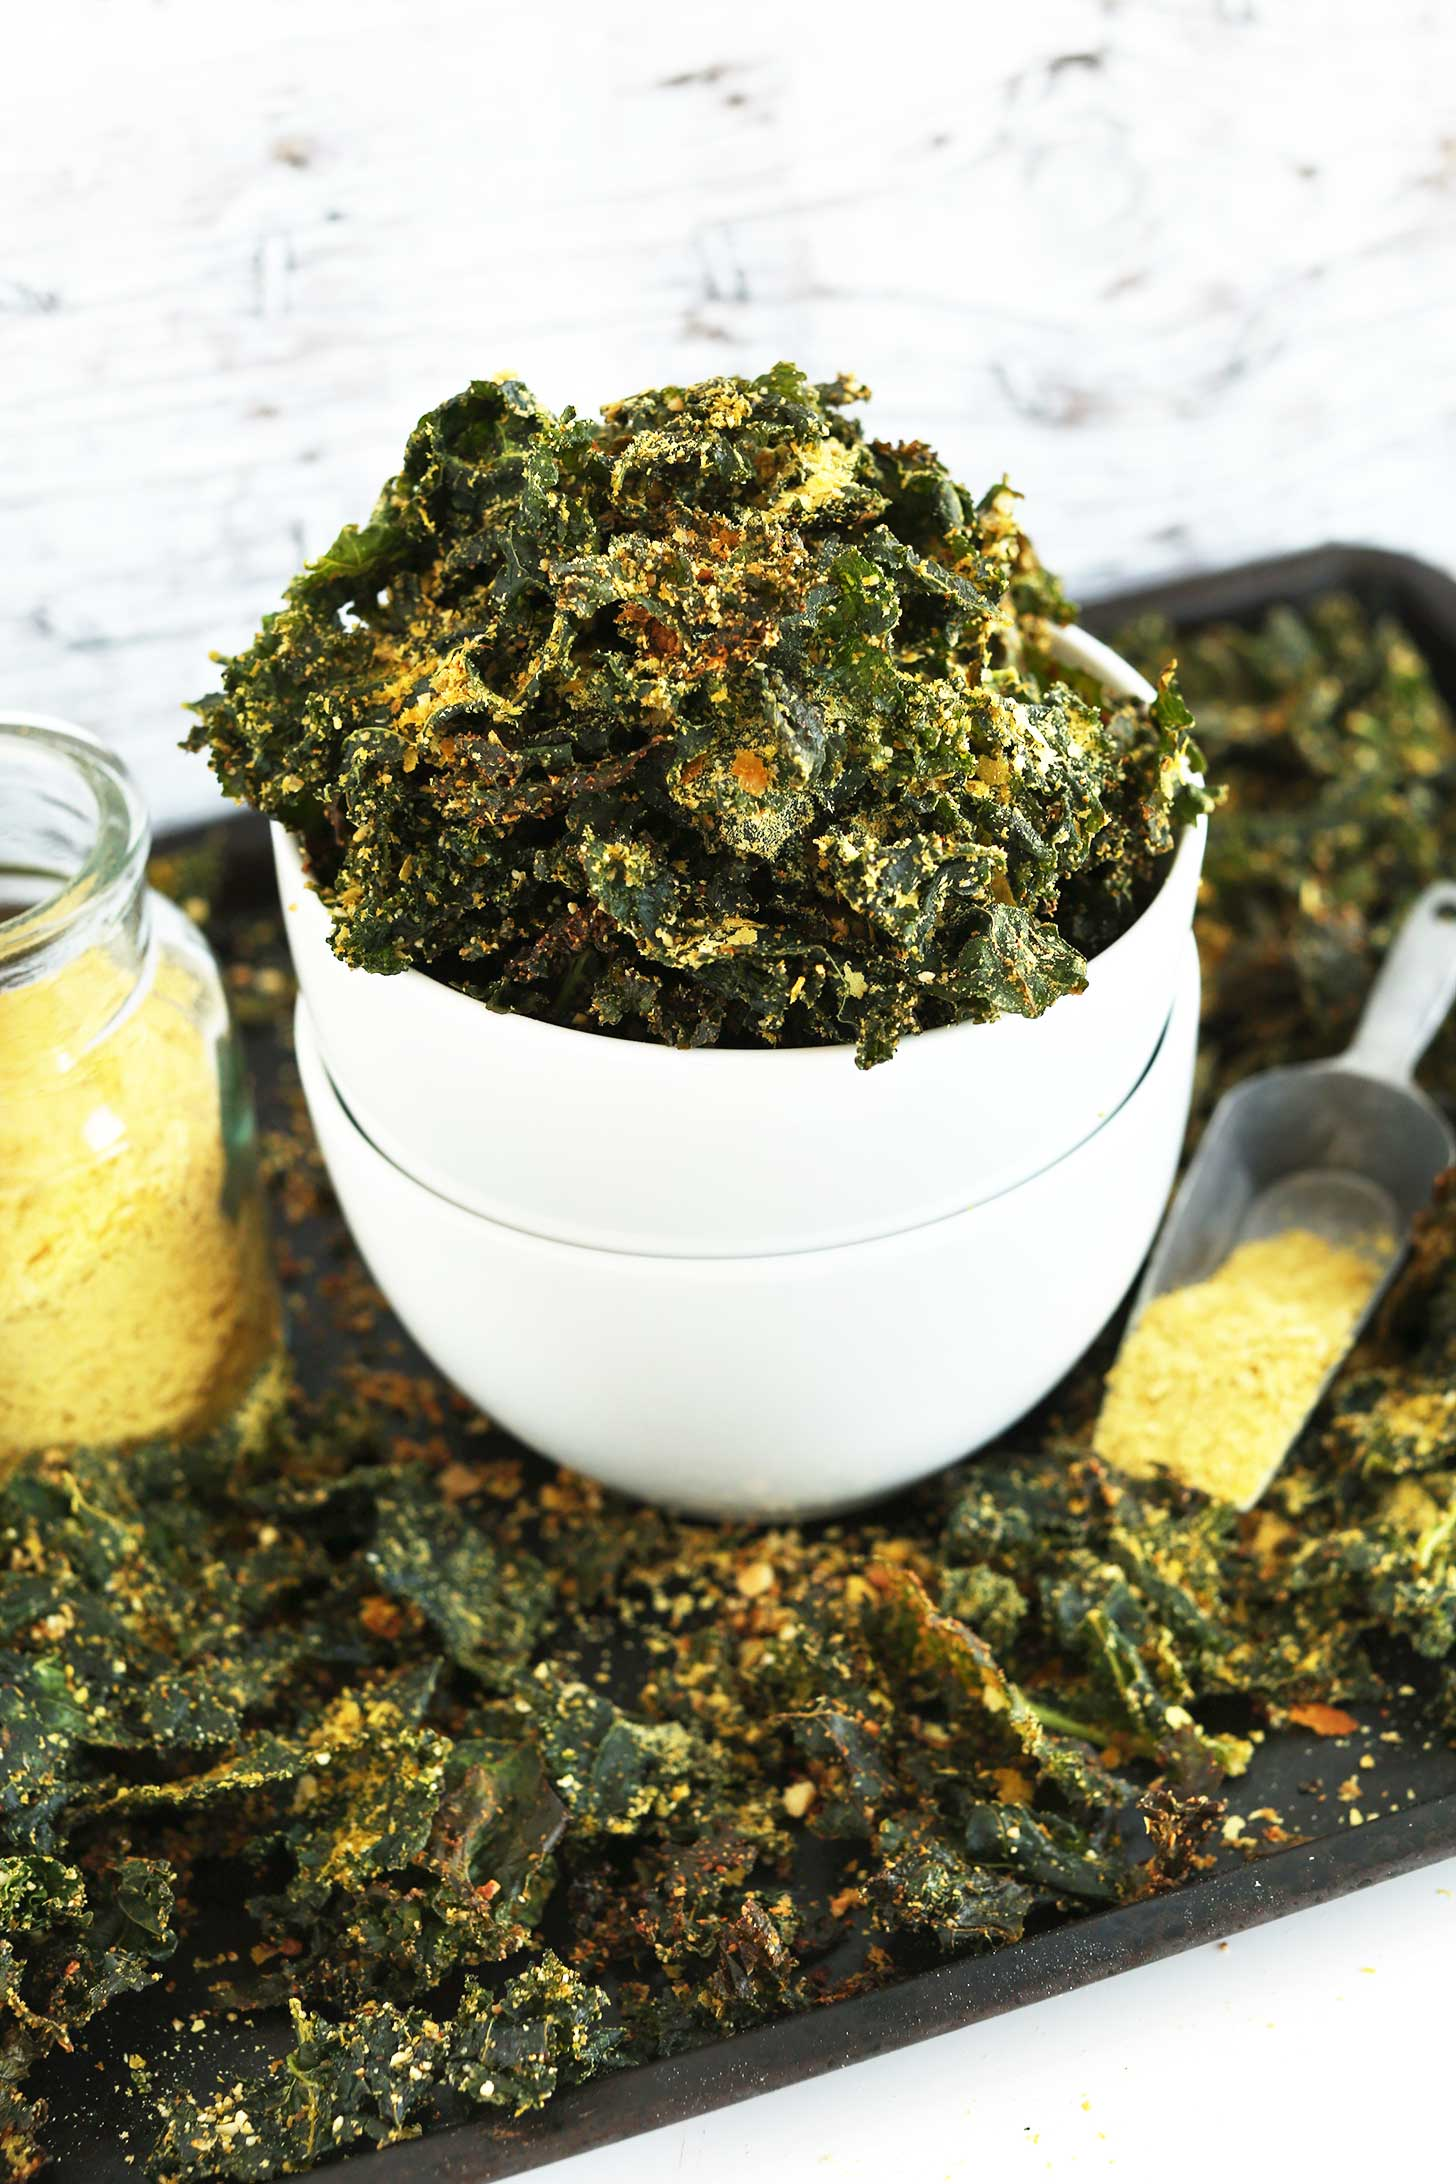 Bowl of our easy to make Cheesy Vegan Kale Chips on a baking sheet